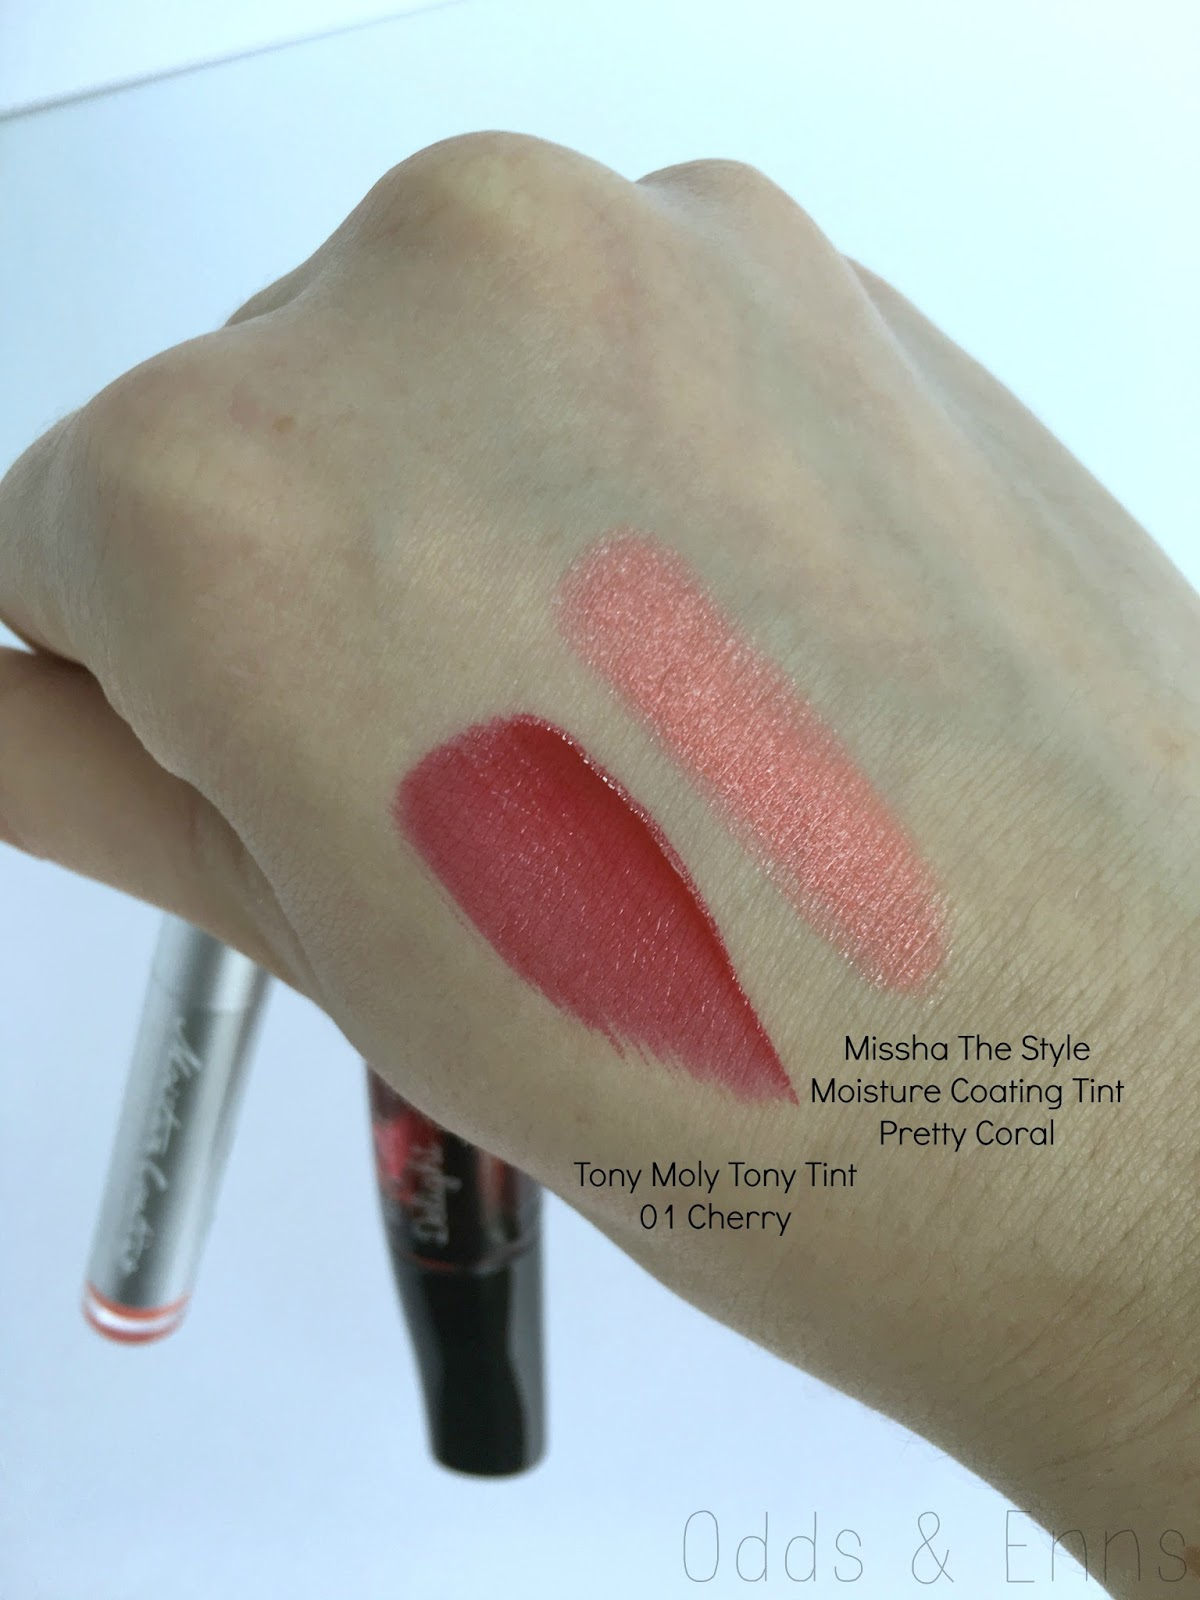 Tony Moly Tony Tint & Missha The Style Moisture Coating Tint Swatches